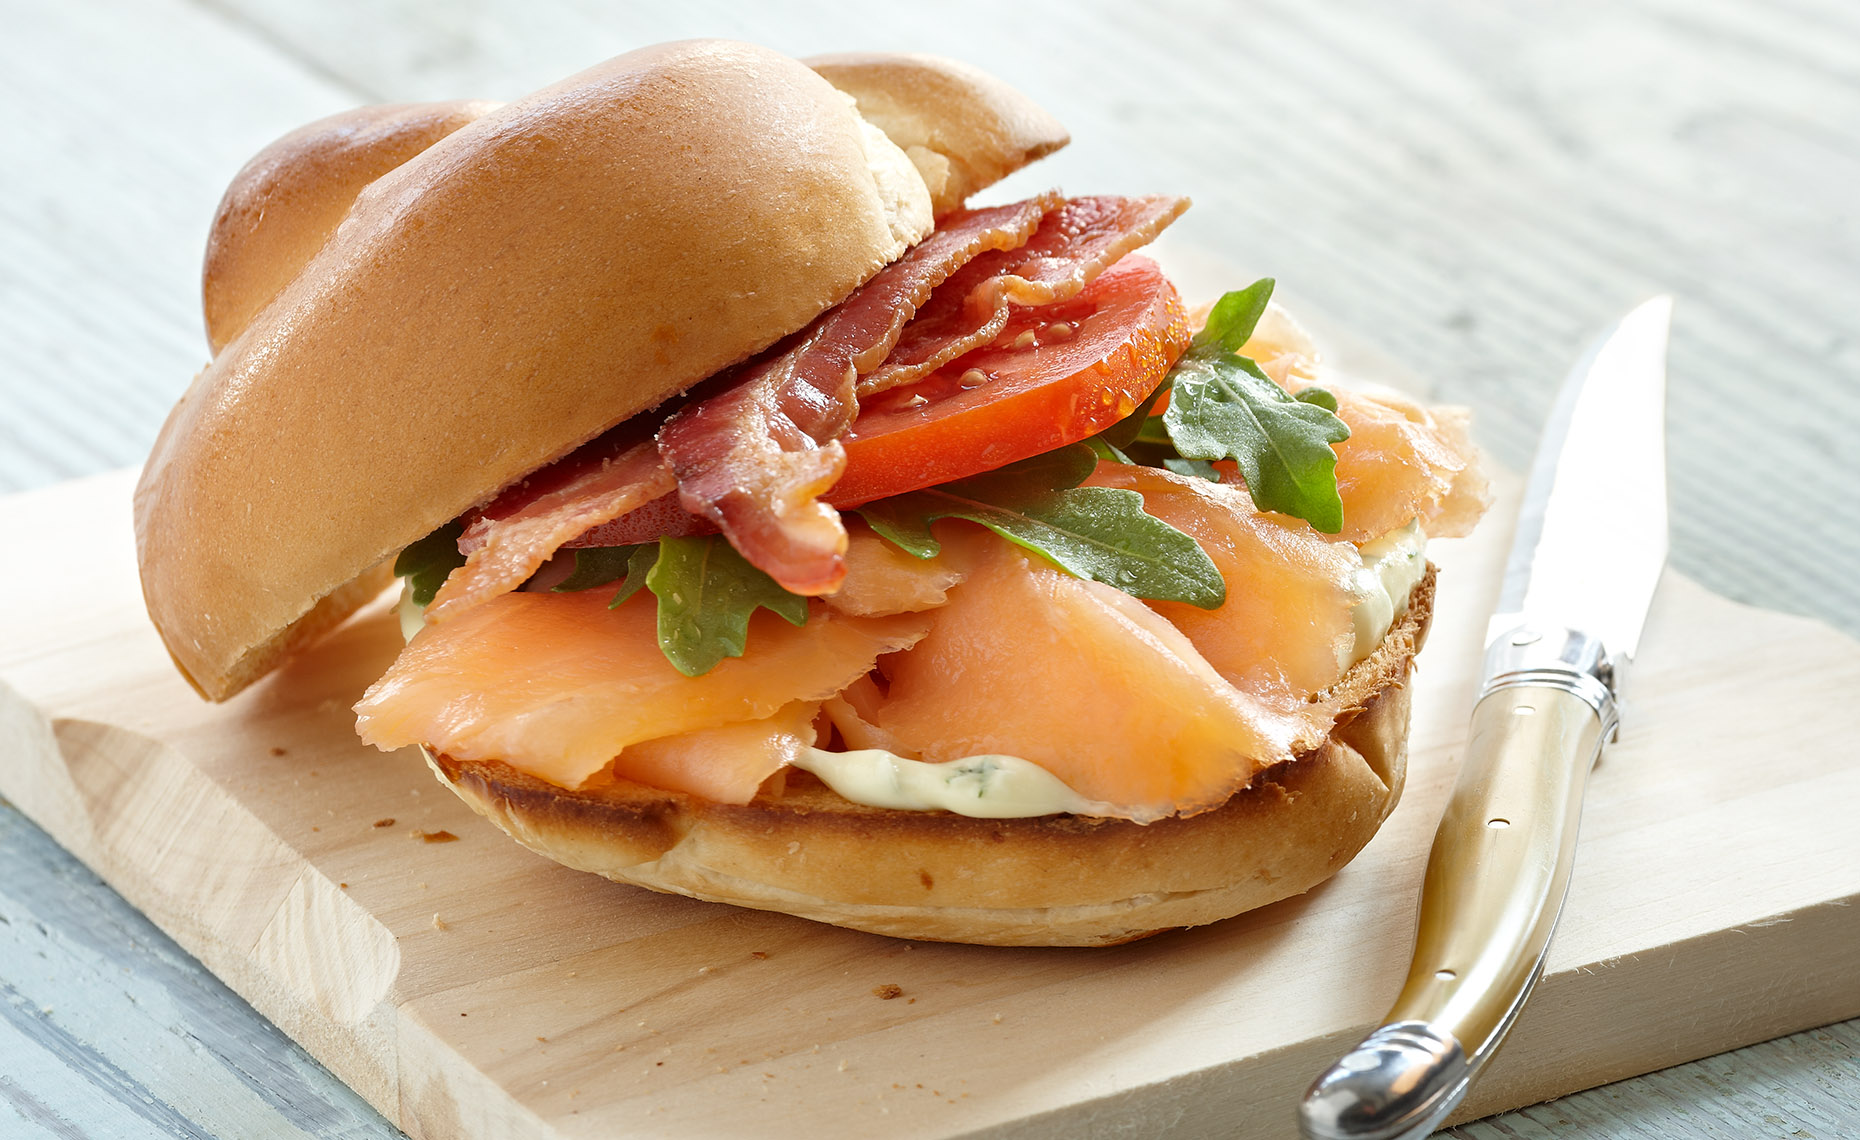 Food Photographer, Fast Food  photography,  Bread photography, Burger photography | Pohuski Studios,  Salmon BLT